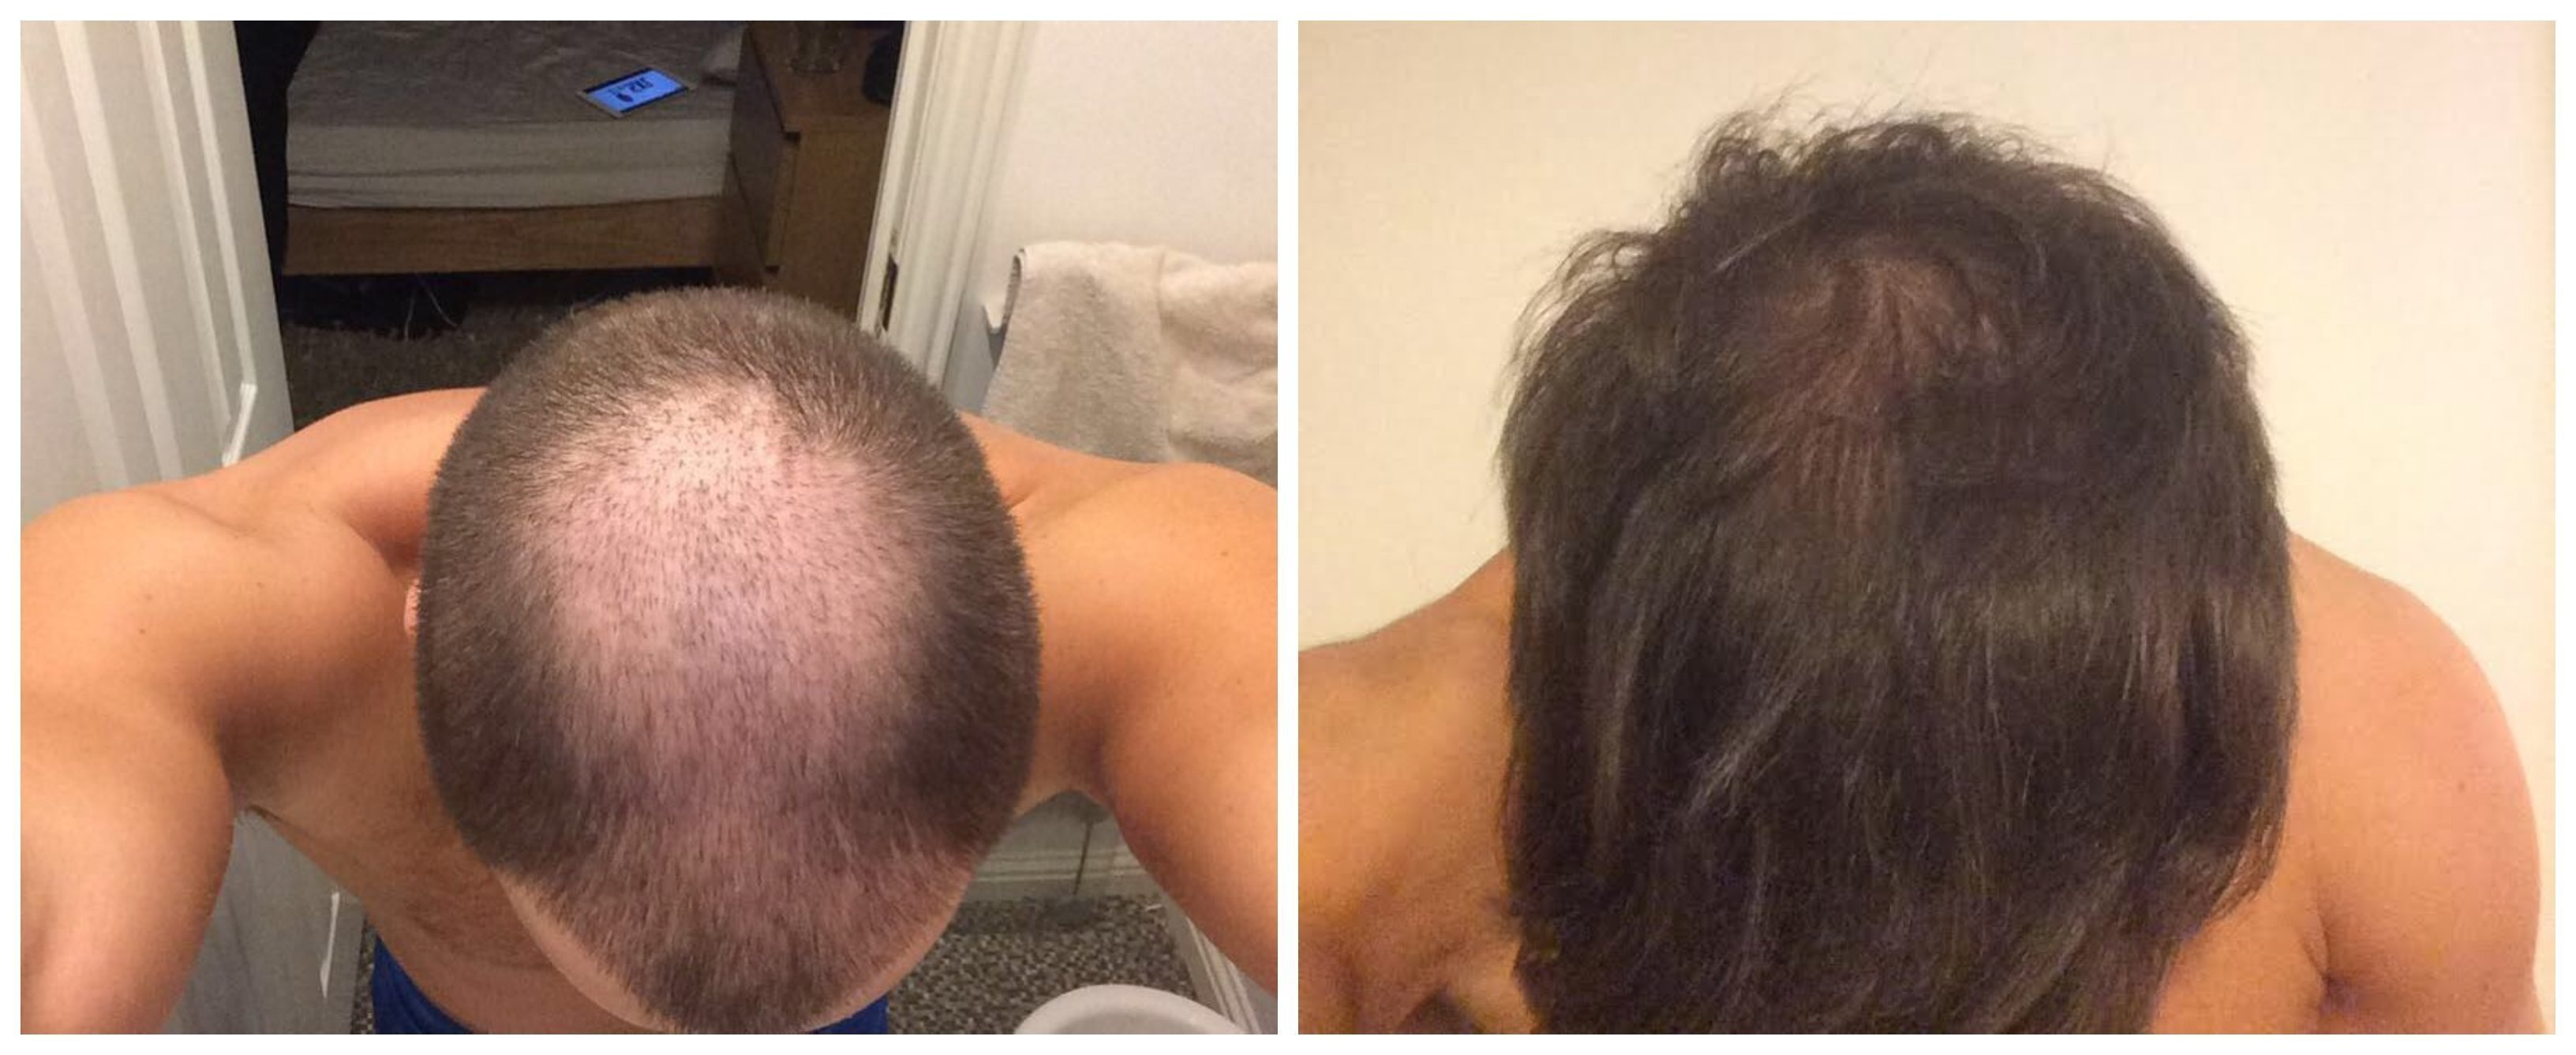 Photo showing the succes Liam had with Finasteride